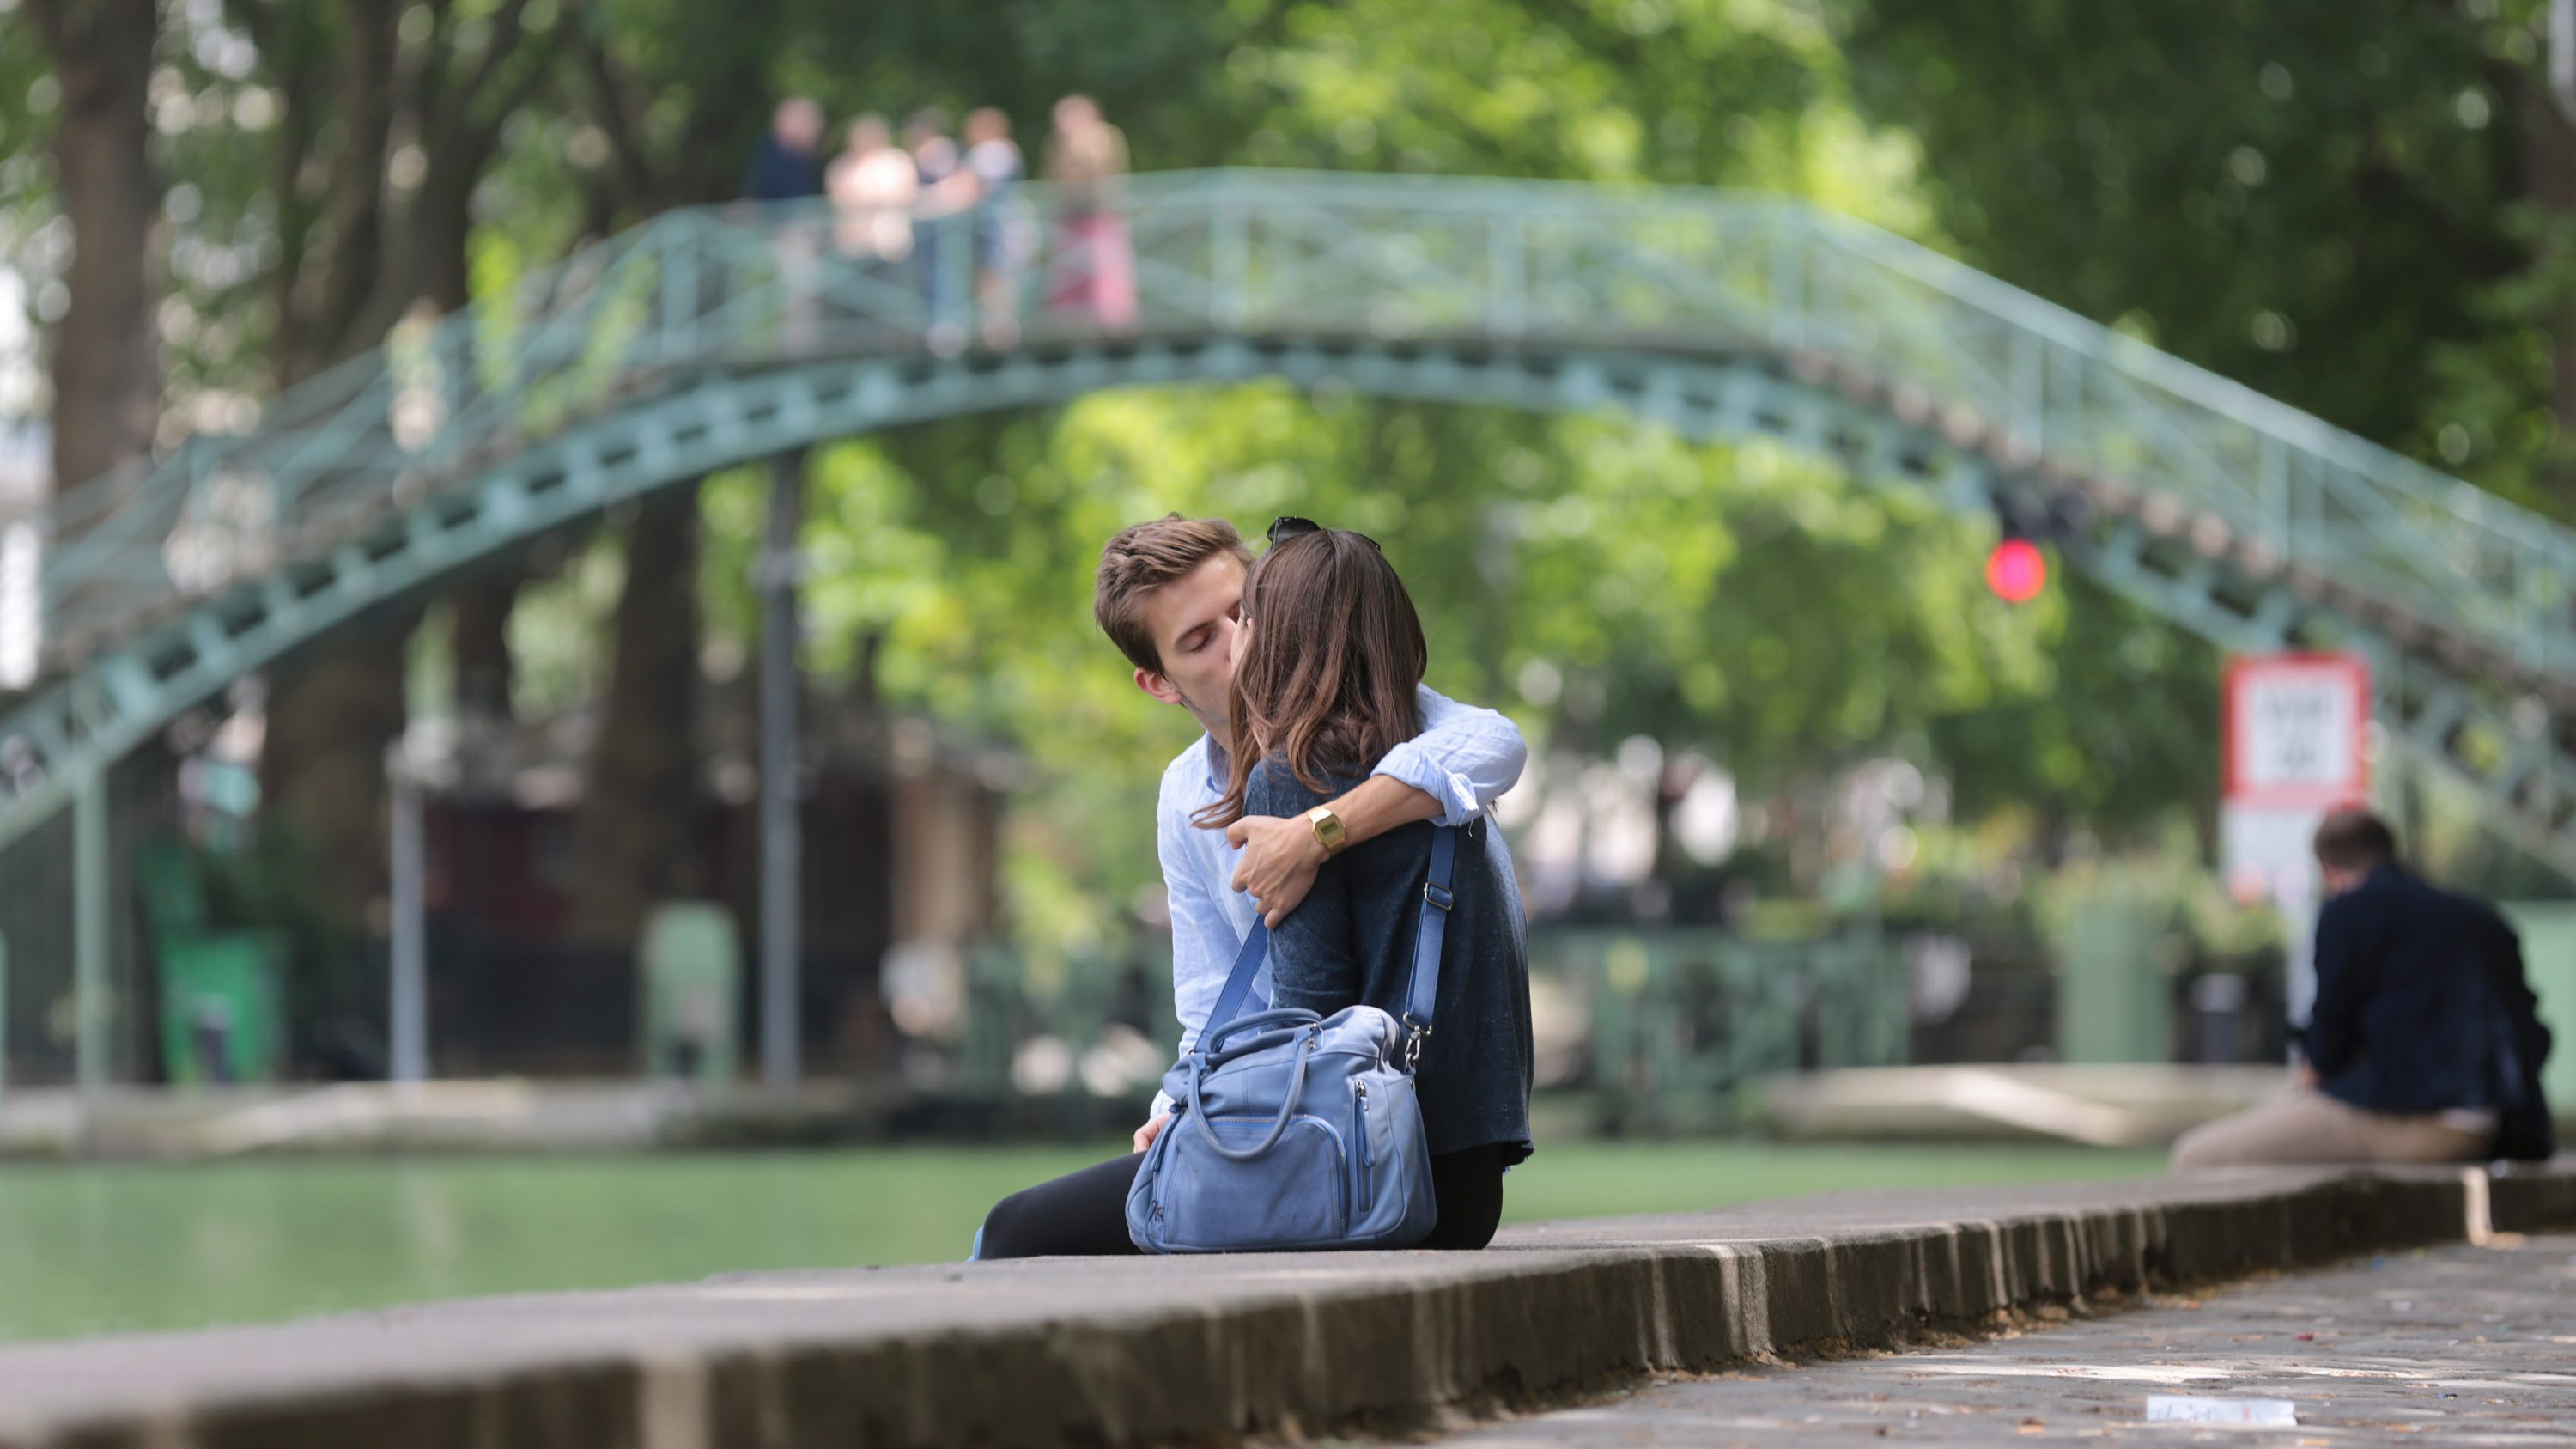 A young couple kisses while sitting on the edge of the Canal Saint-Martin in Paris, France, June 20, 2015. Inauguarated in 1825, the 4.5 km waterway comprised of nine locks running through the 10th and 11th districts of the French capital.